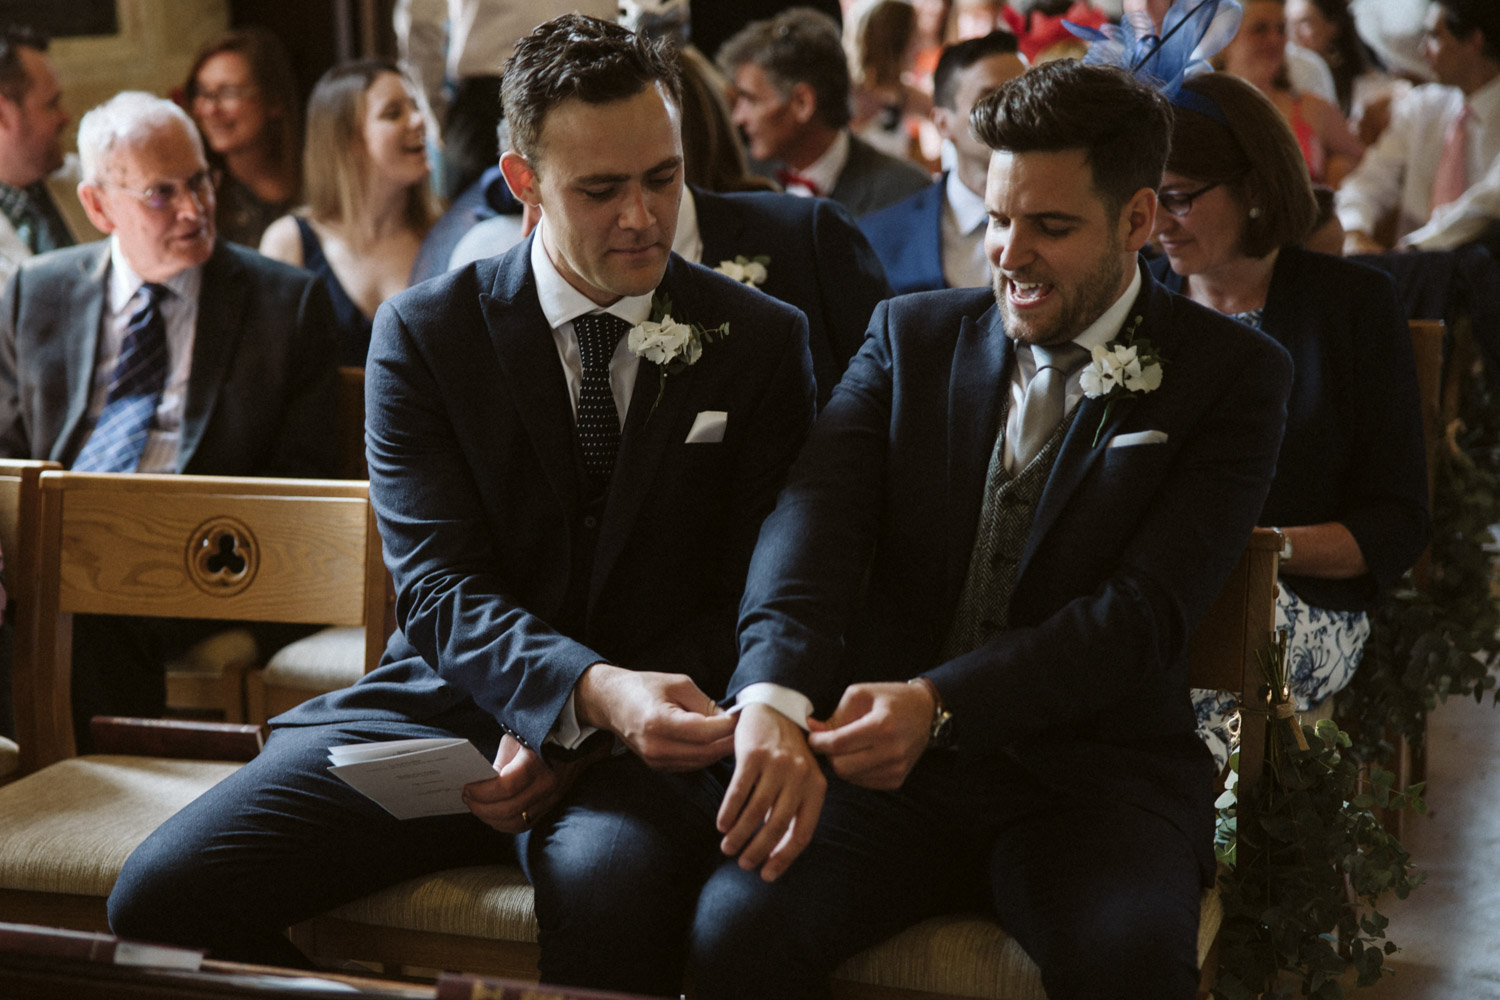 the best man and groom sitting at the altar